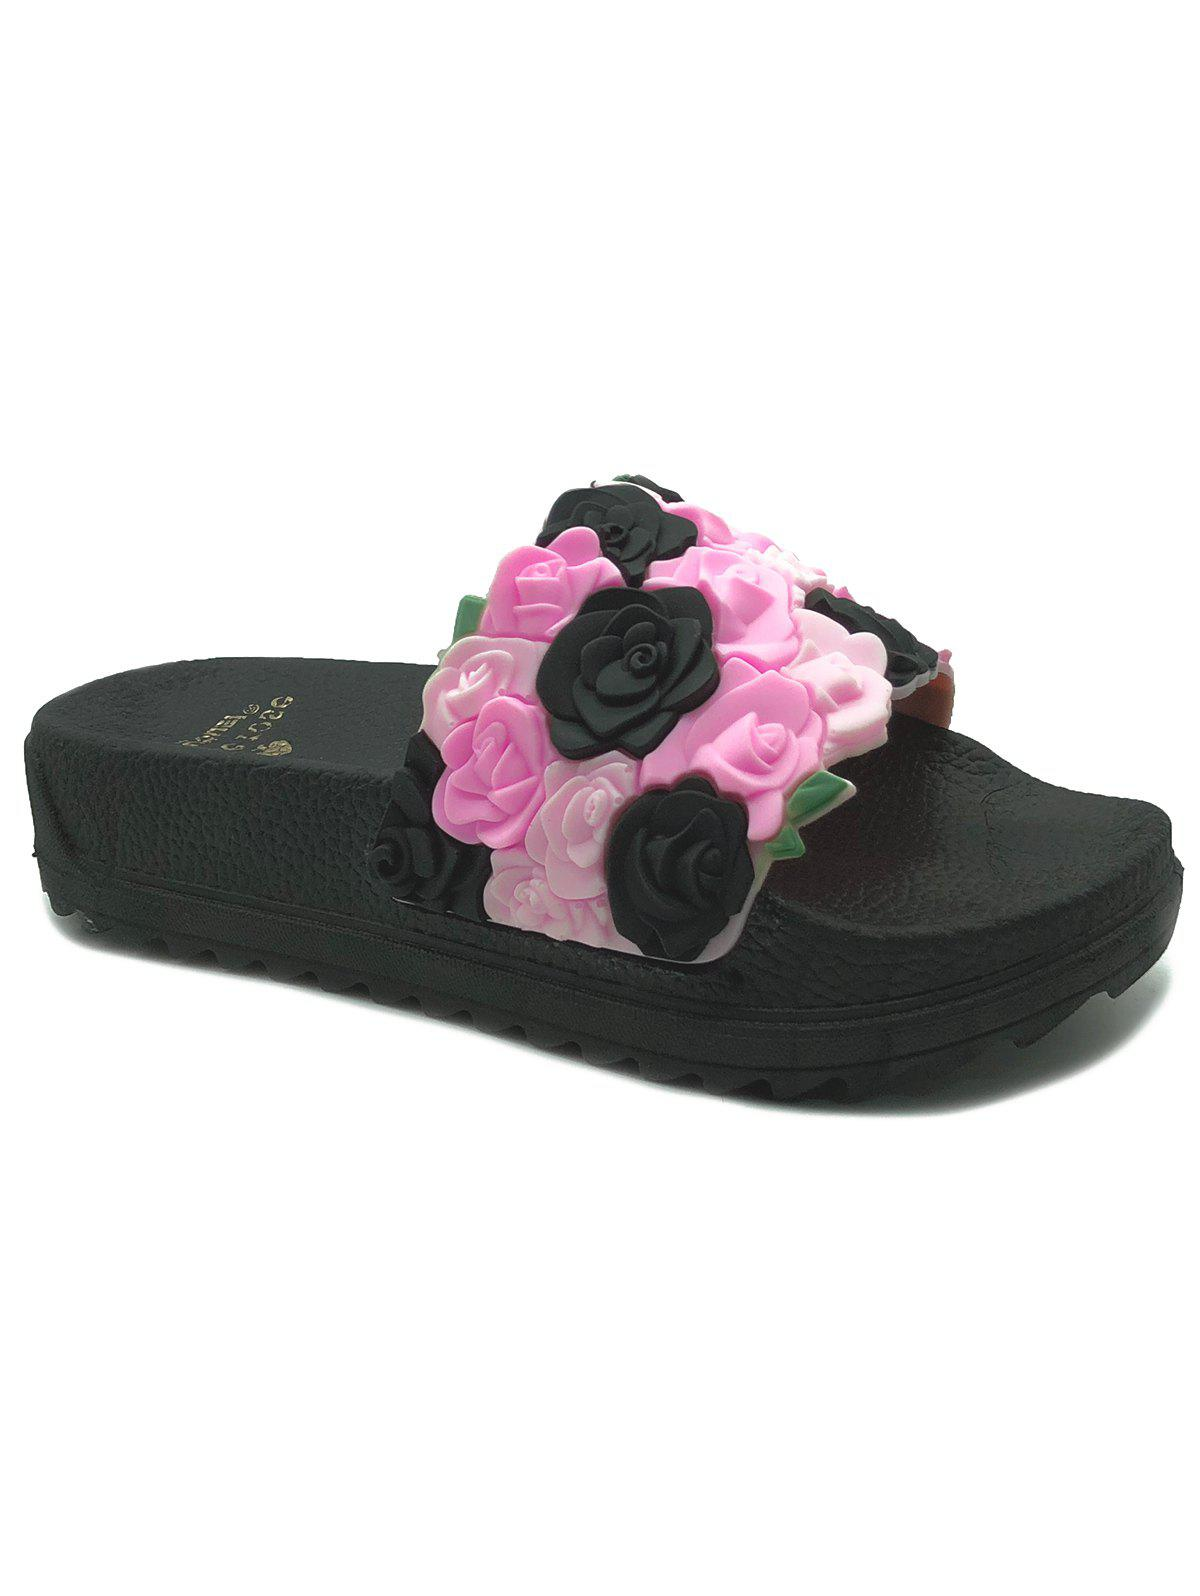 Trendy Roses Slip On Indoor and Outdoor Platform Slippers